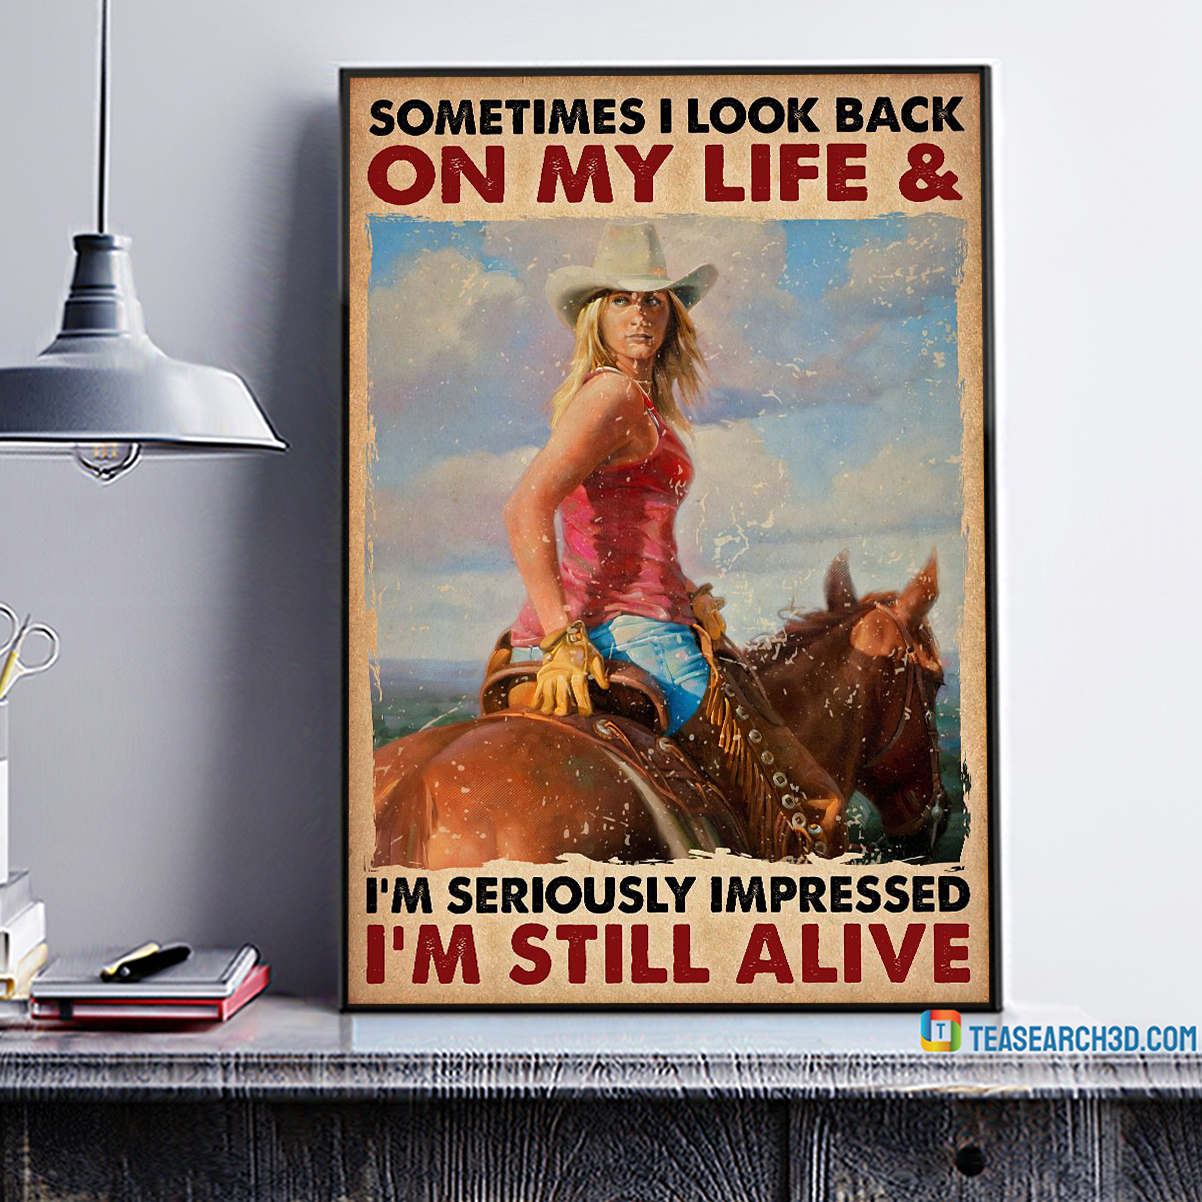 Cowgirl sometimes I look back on my life poster A1